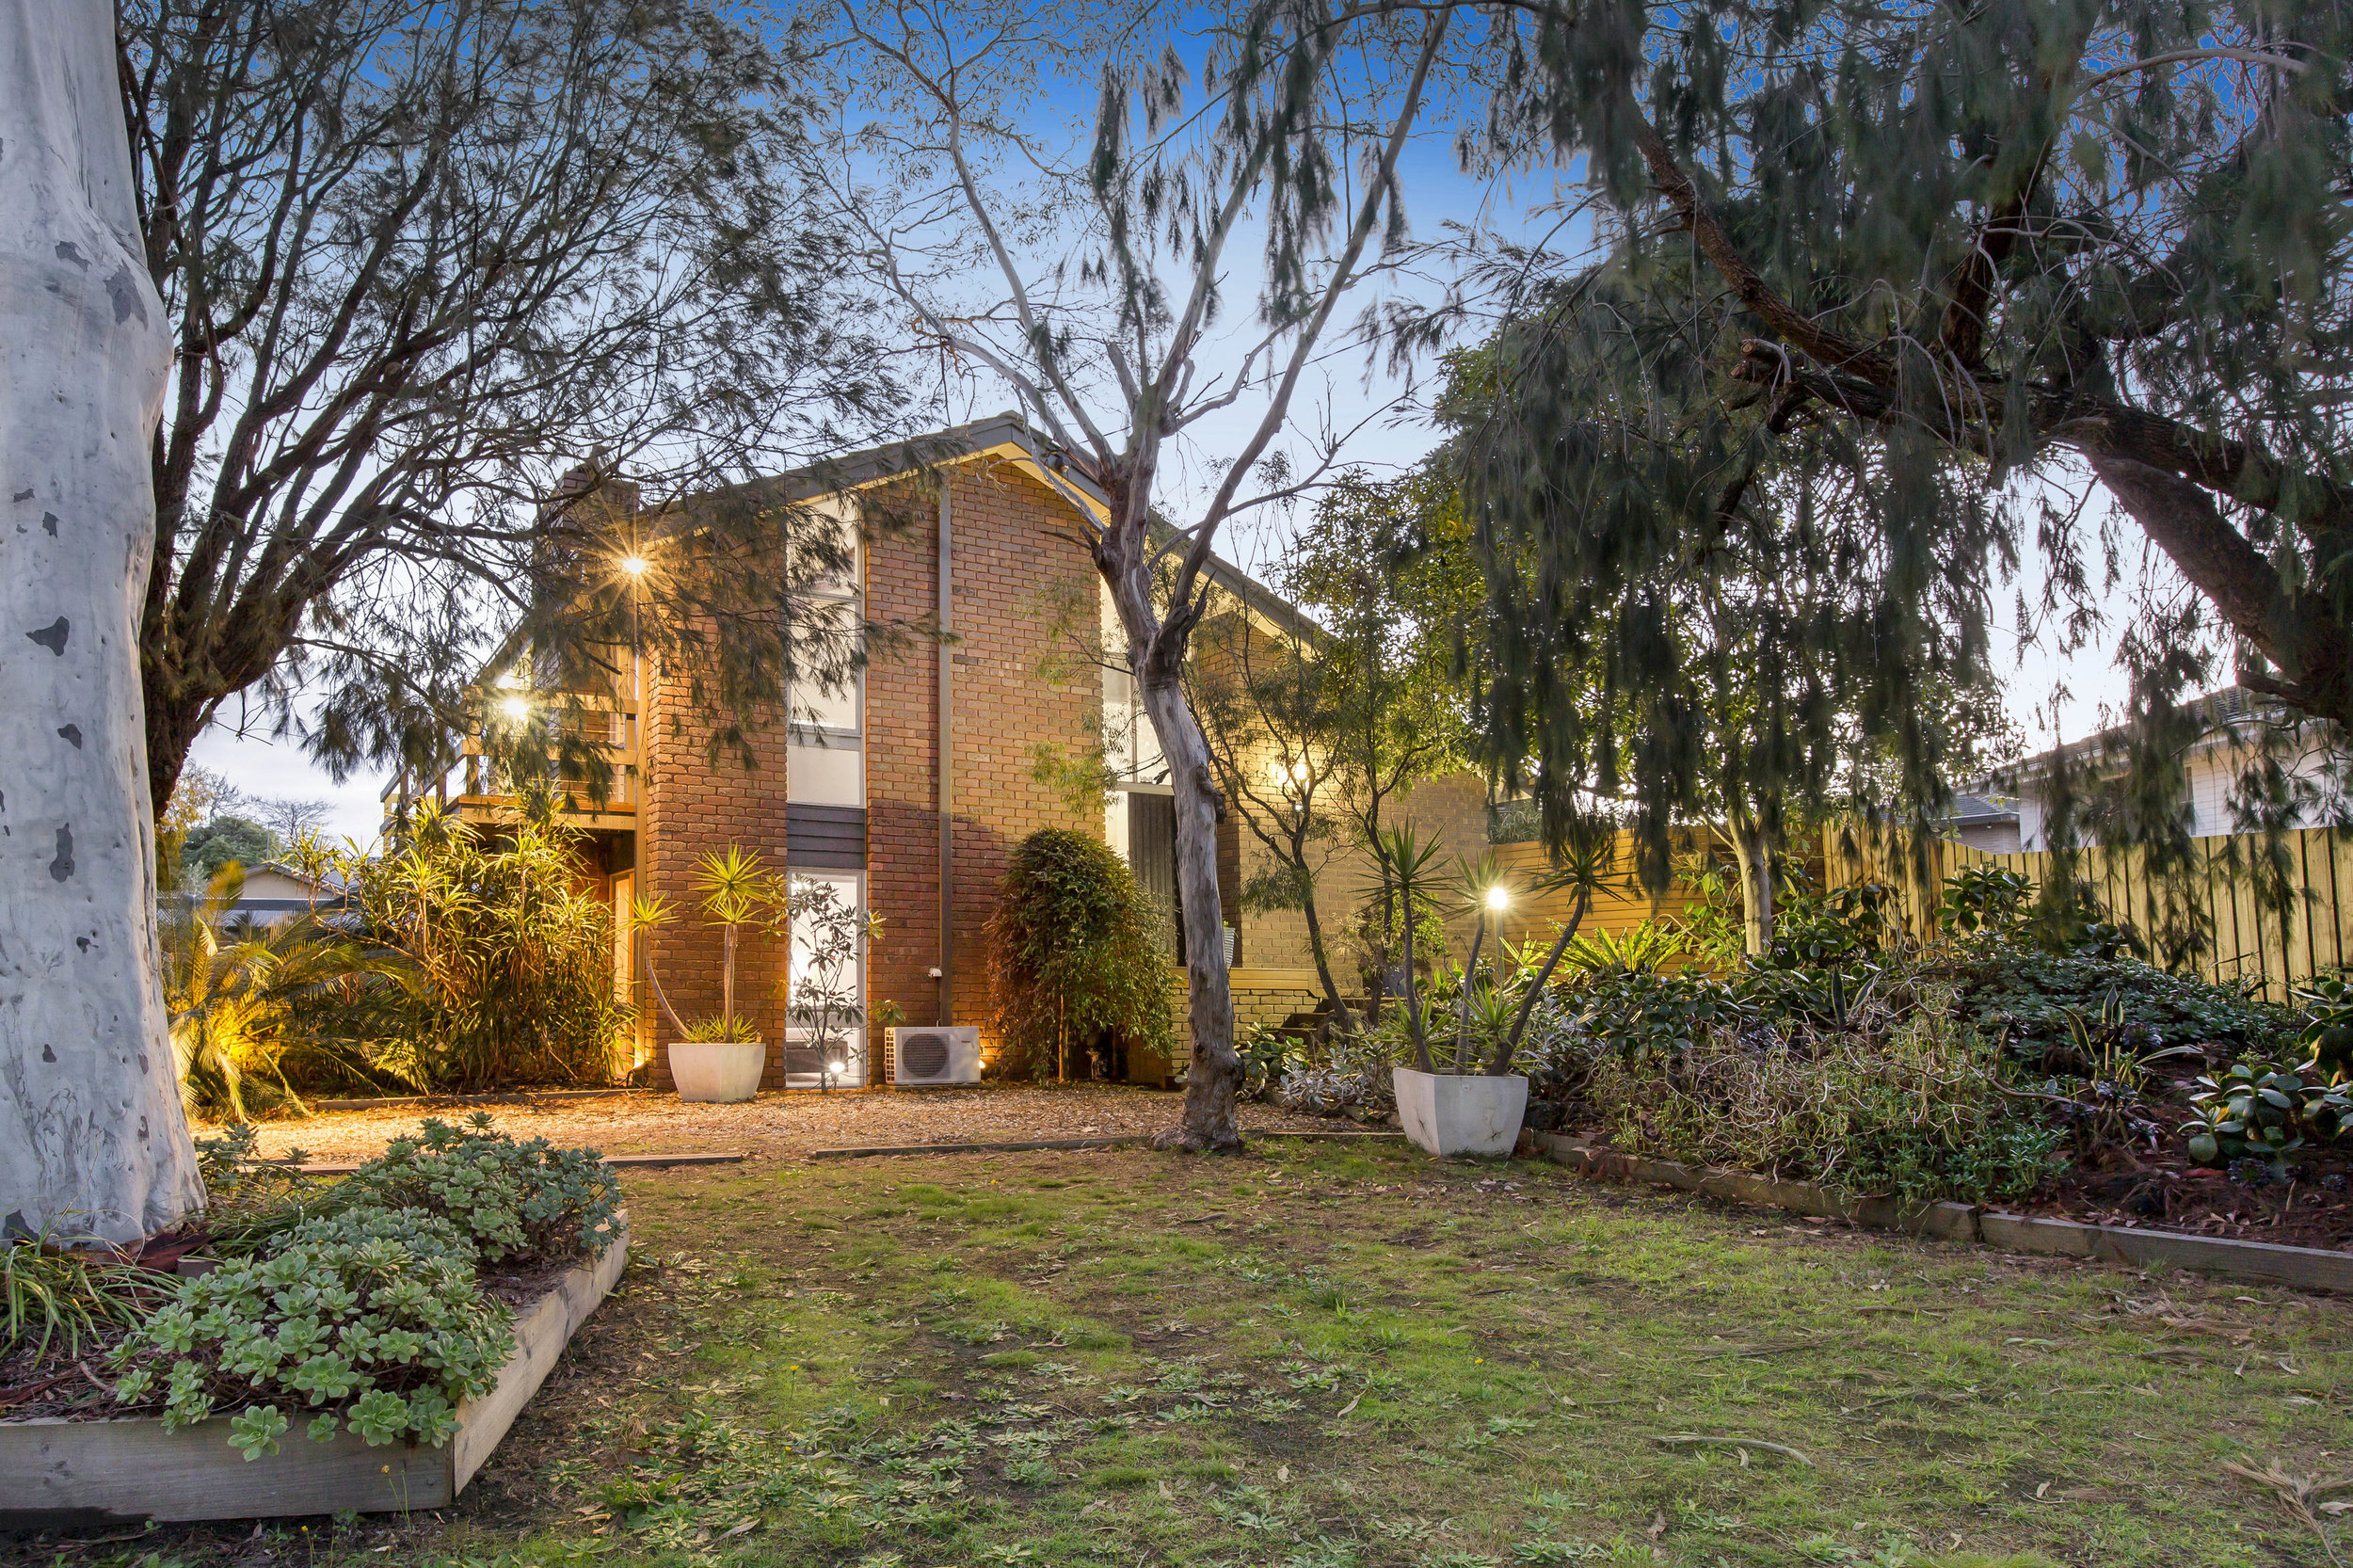 34 Tallis Drive, Mornington SOLD $899,000